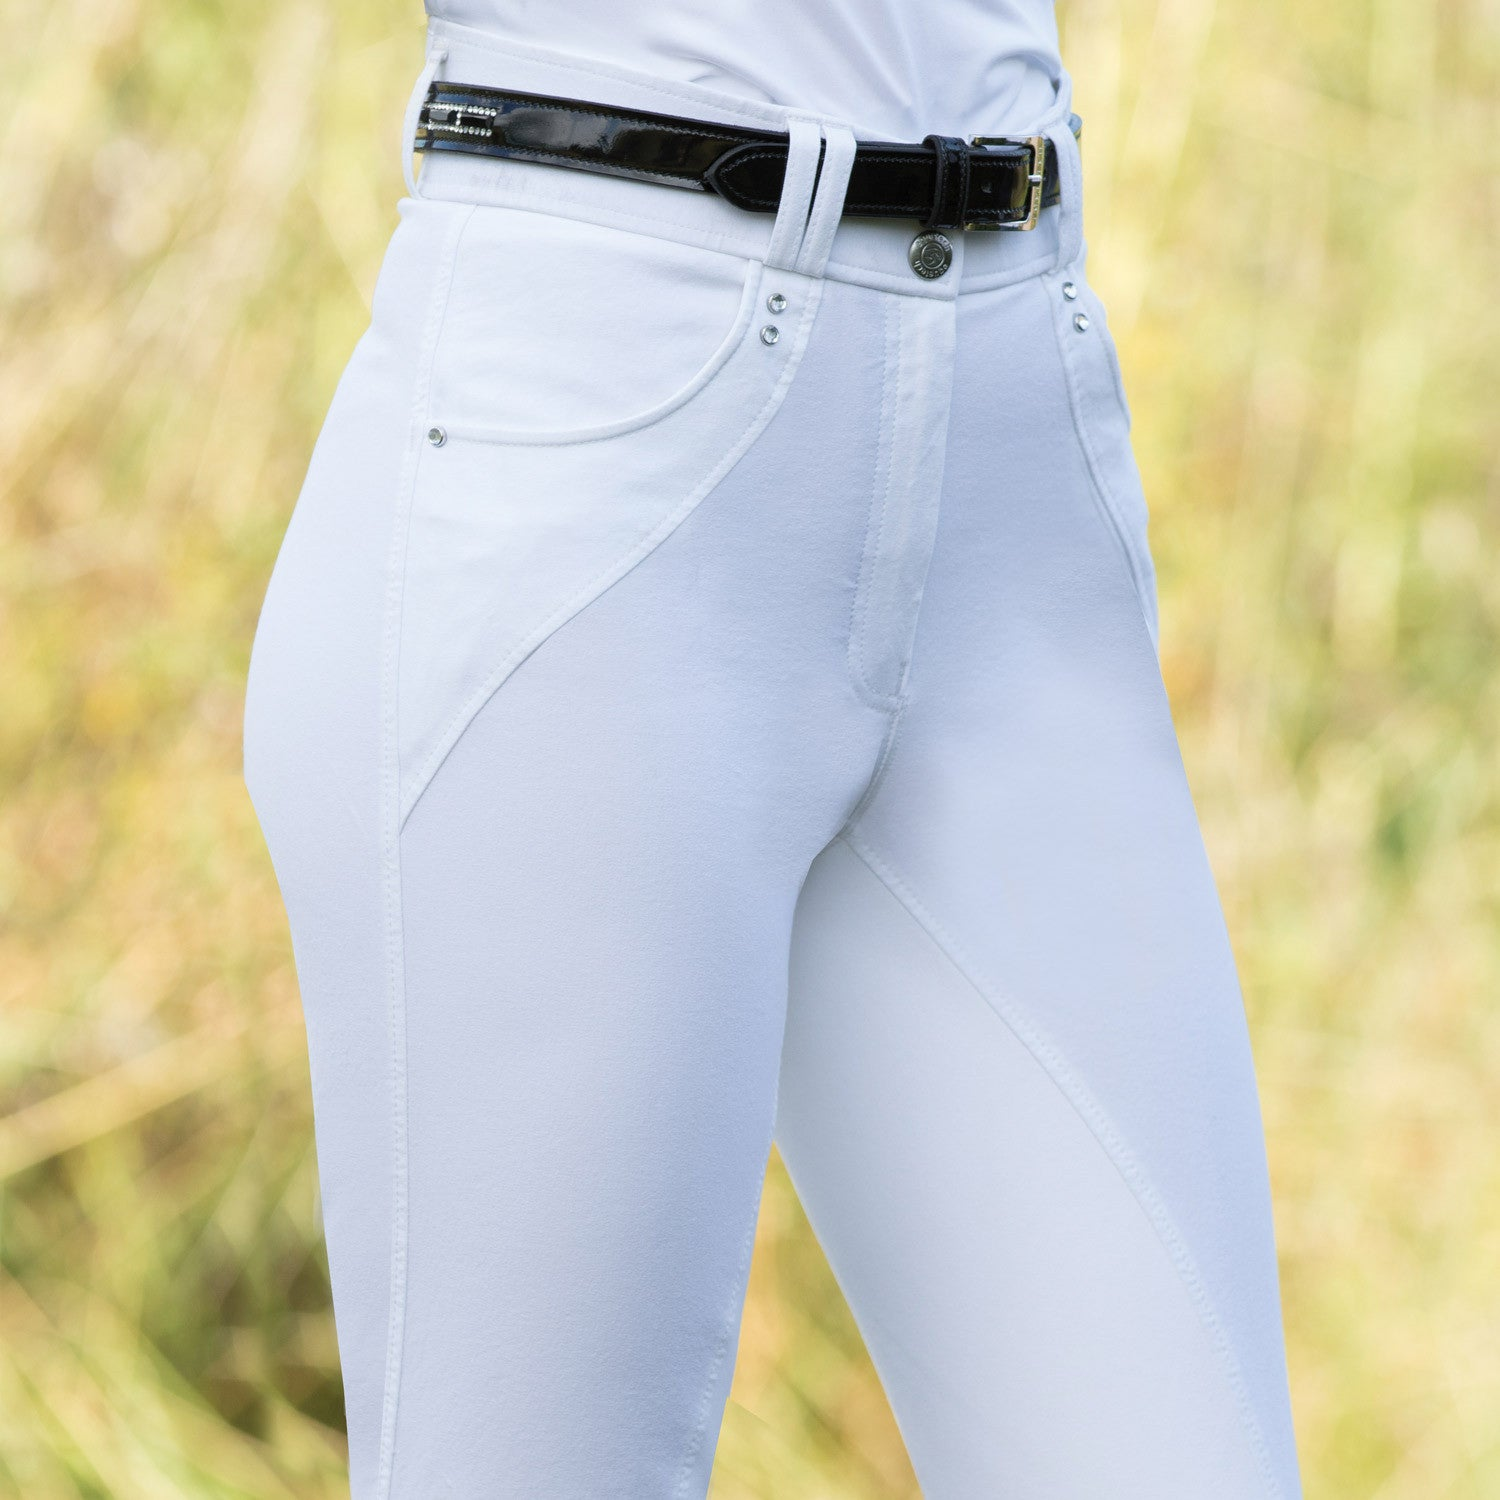 Equetech Harmony Performance Breeches